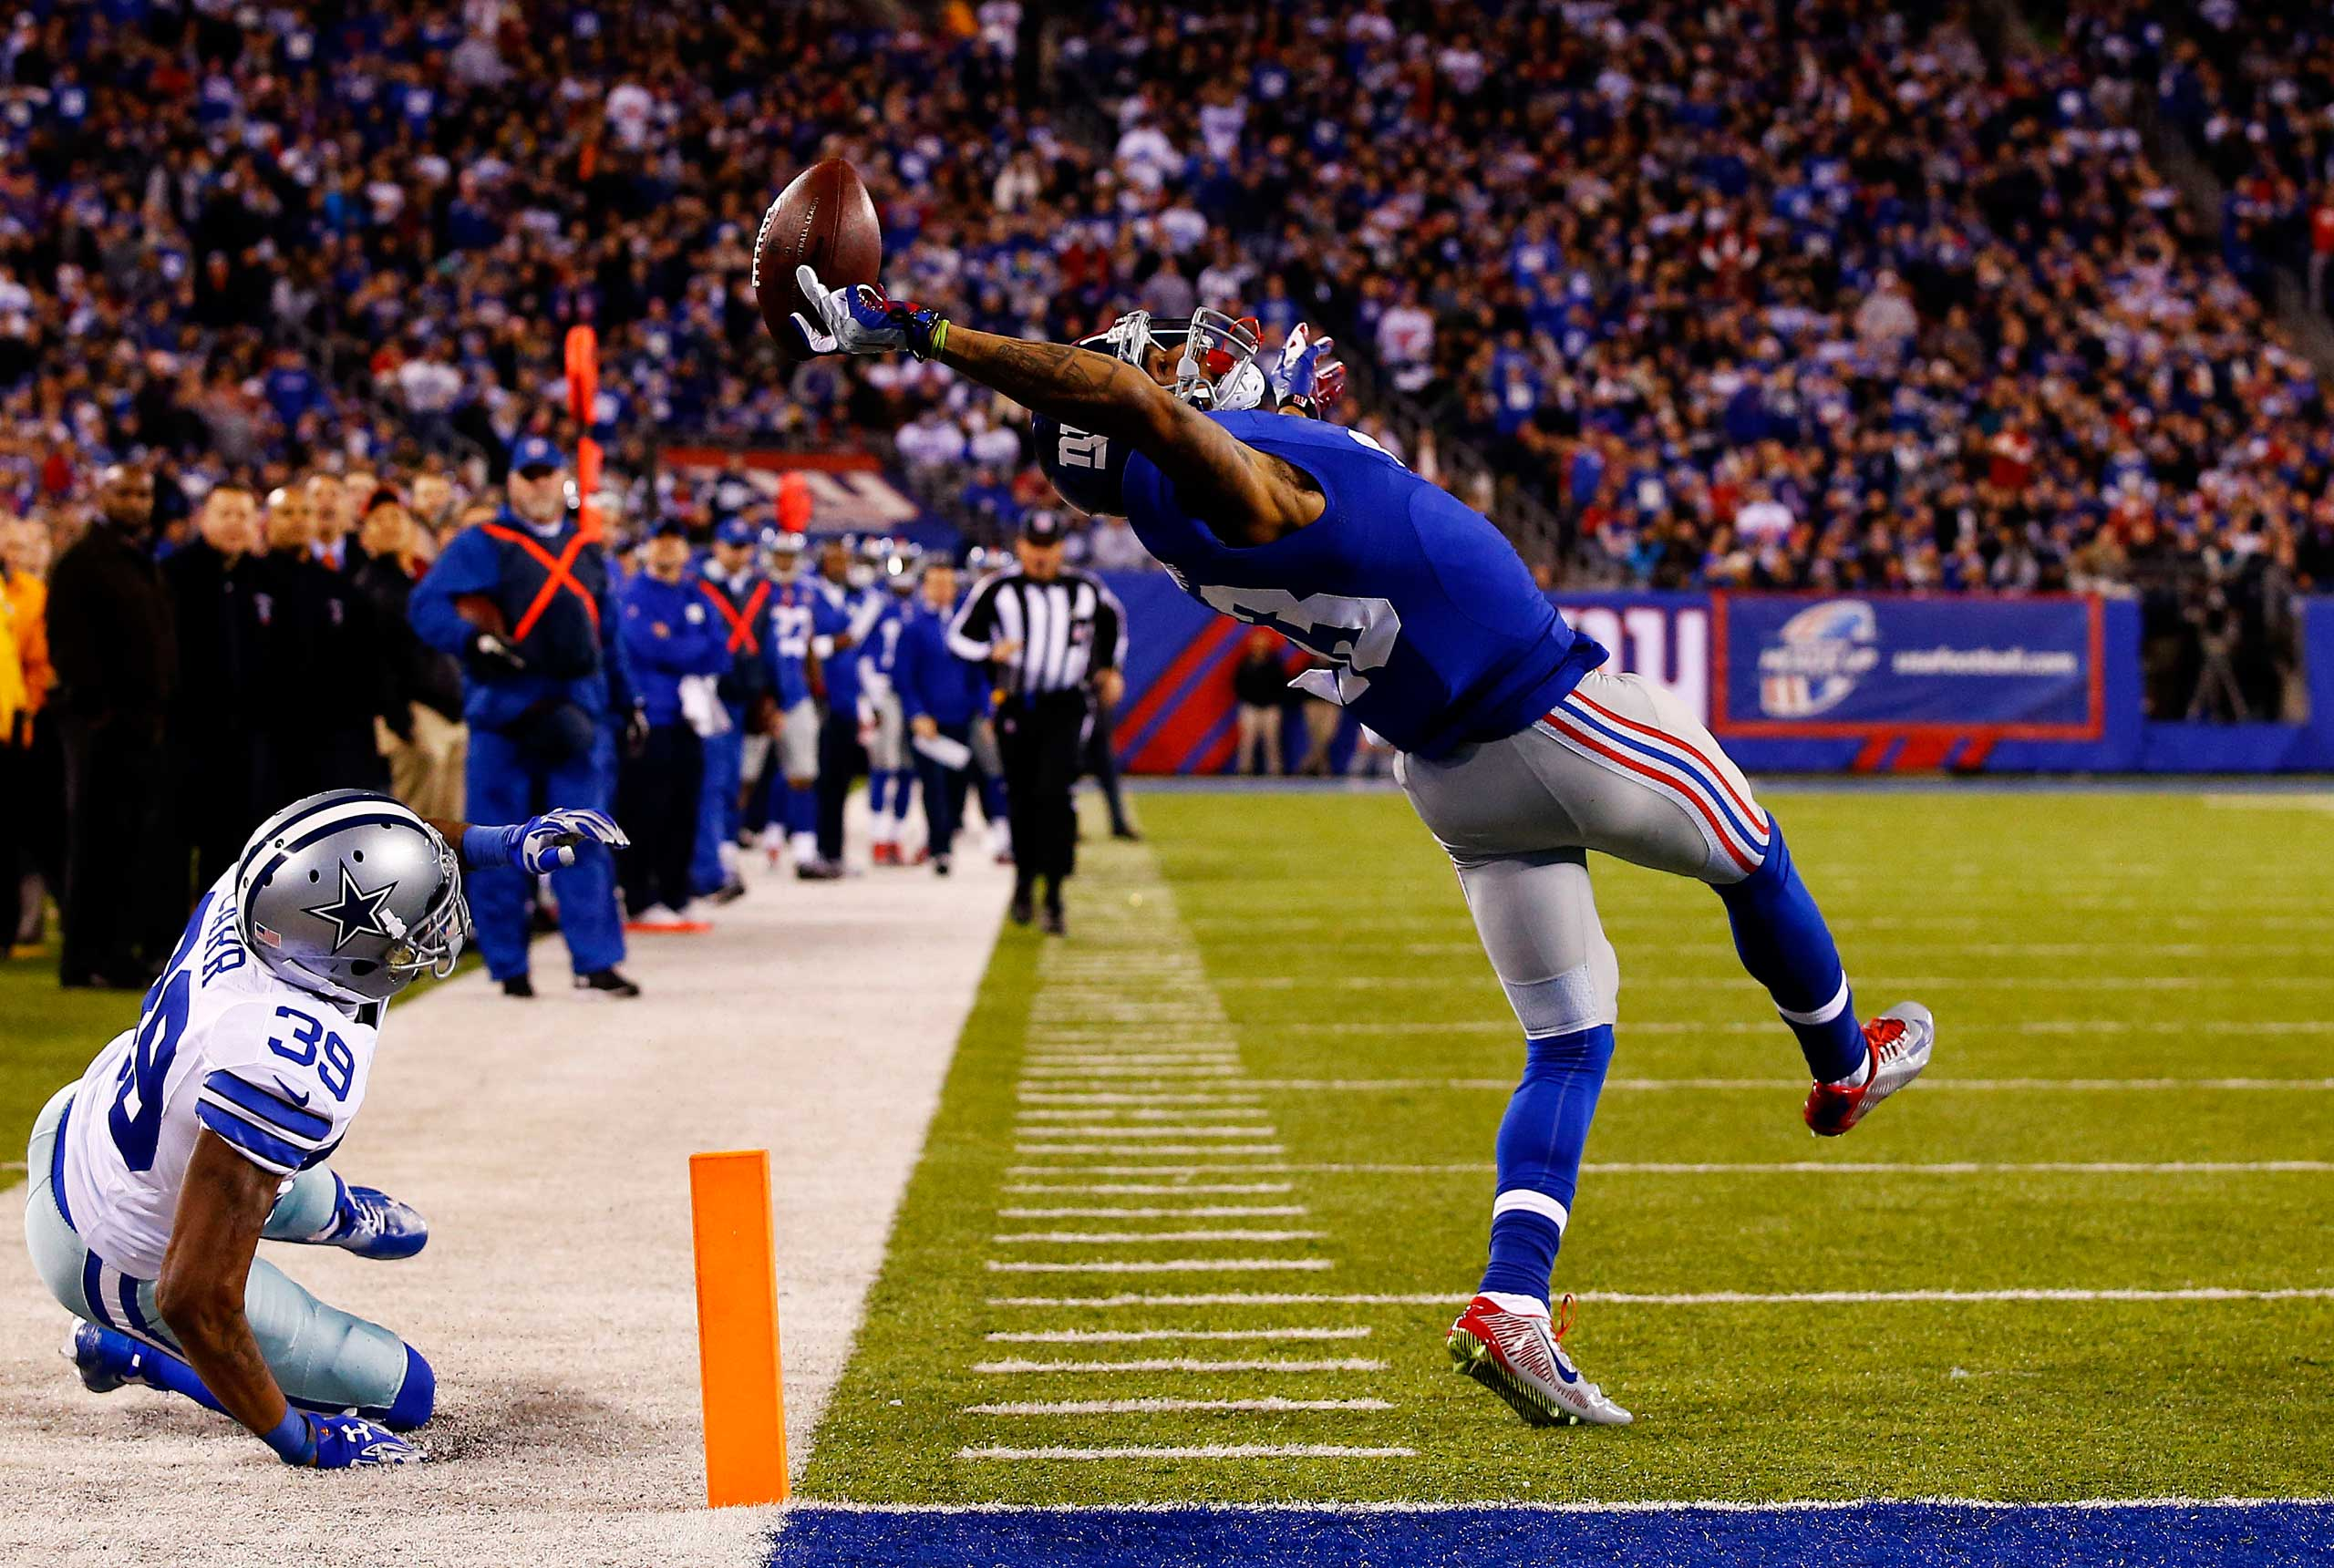 <b>Second Prize Sports Category, Singles</b>Odell Beckham of the New York Giants makes a one-handed touchdown catch in the second quarter against the Dallas Cowboys at MetLife Stadium.